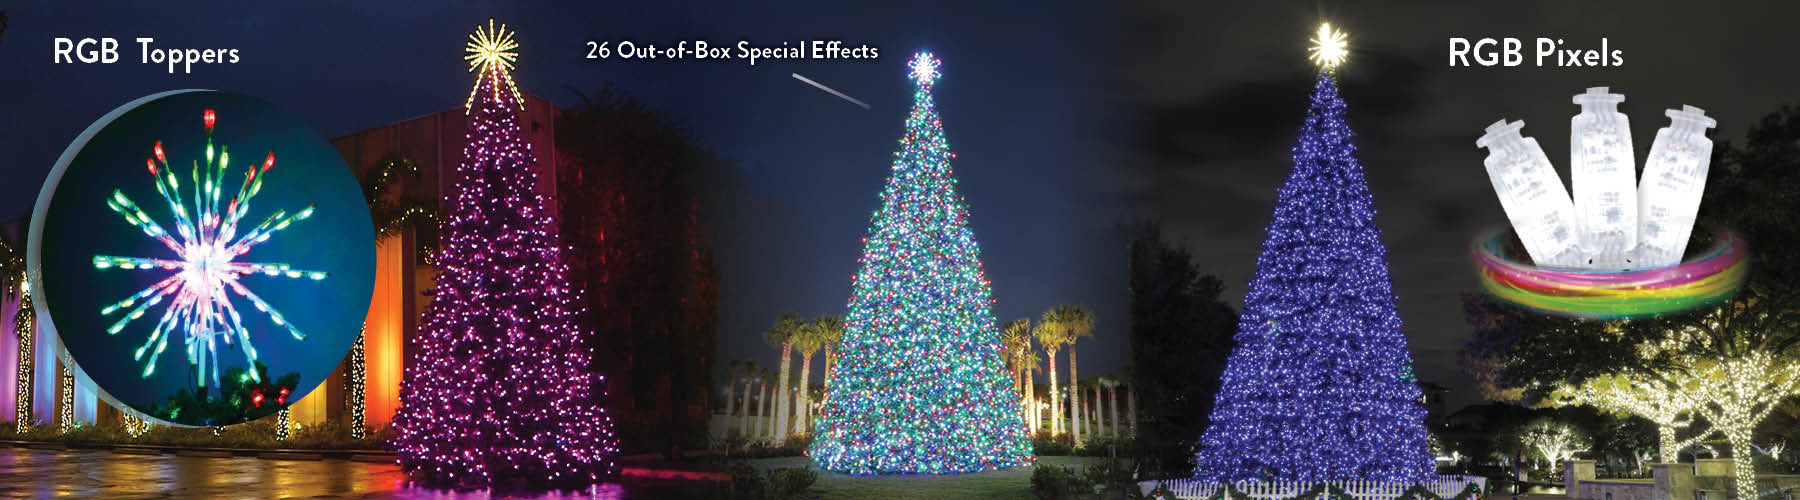 Commercial RGB Christmas Trees